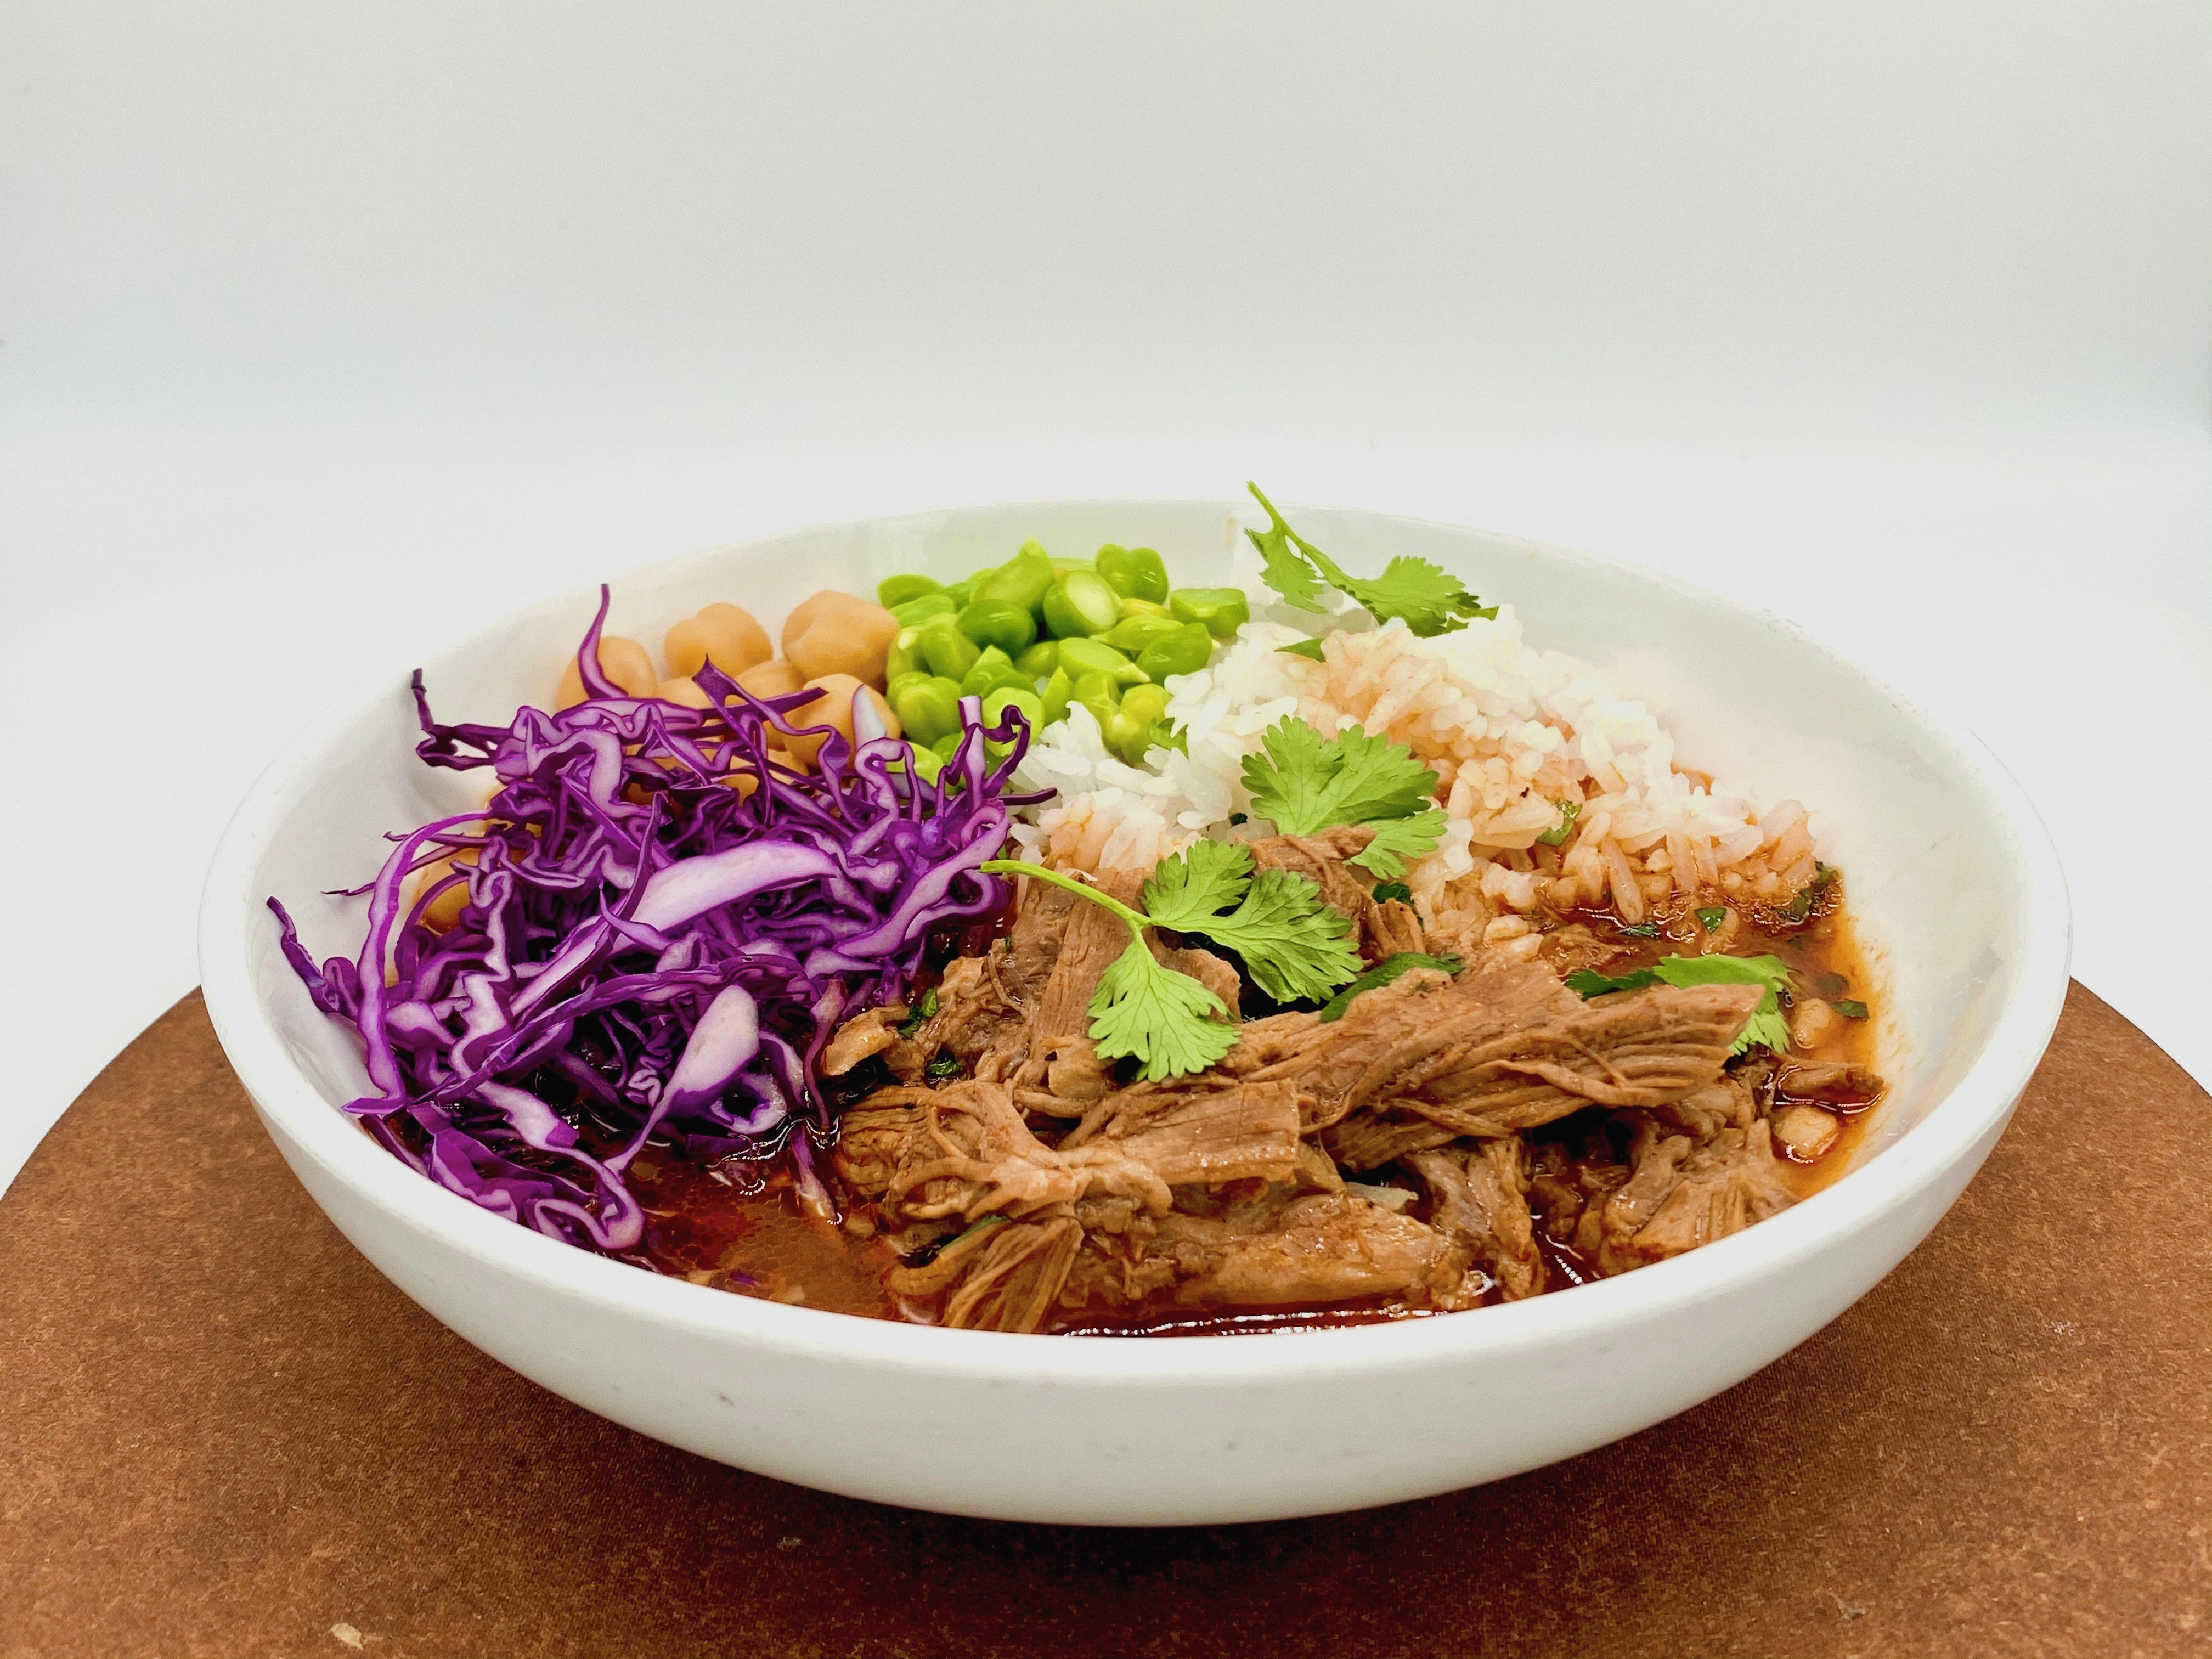 Lamb birria, chickpeas, red cabbage, and white rice